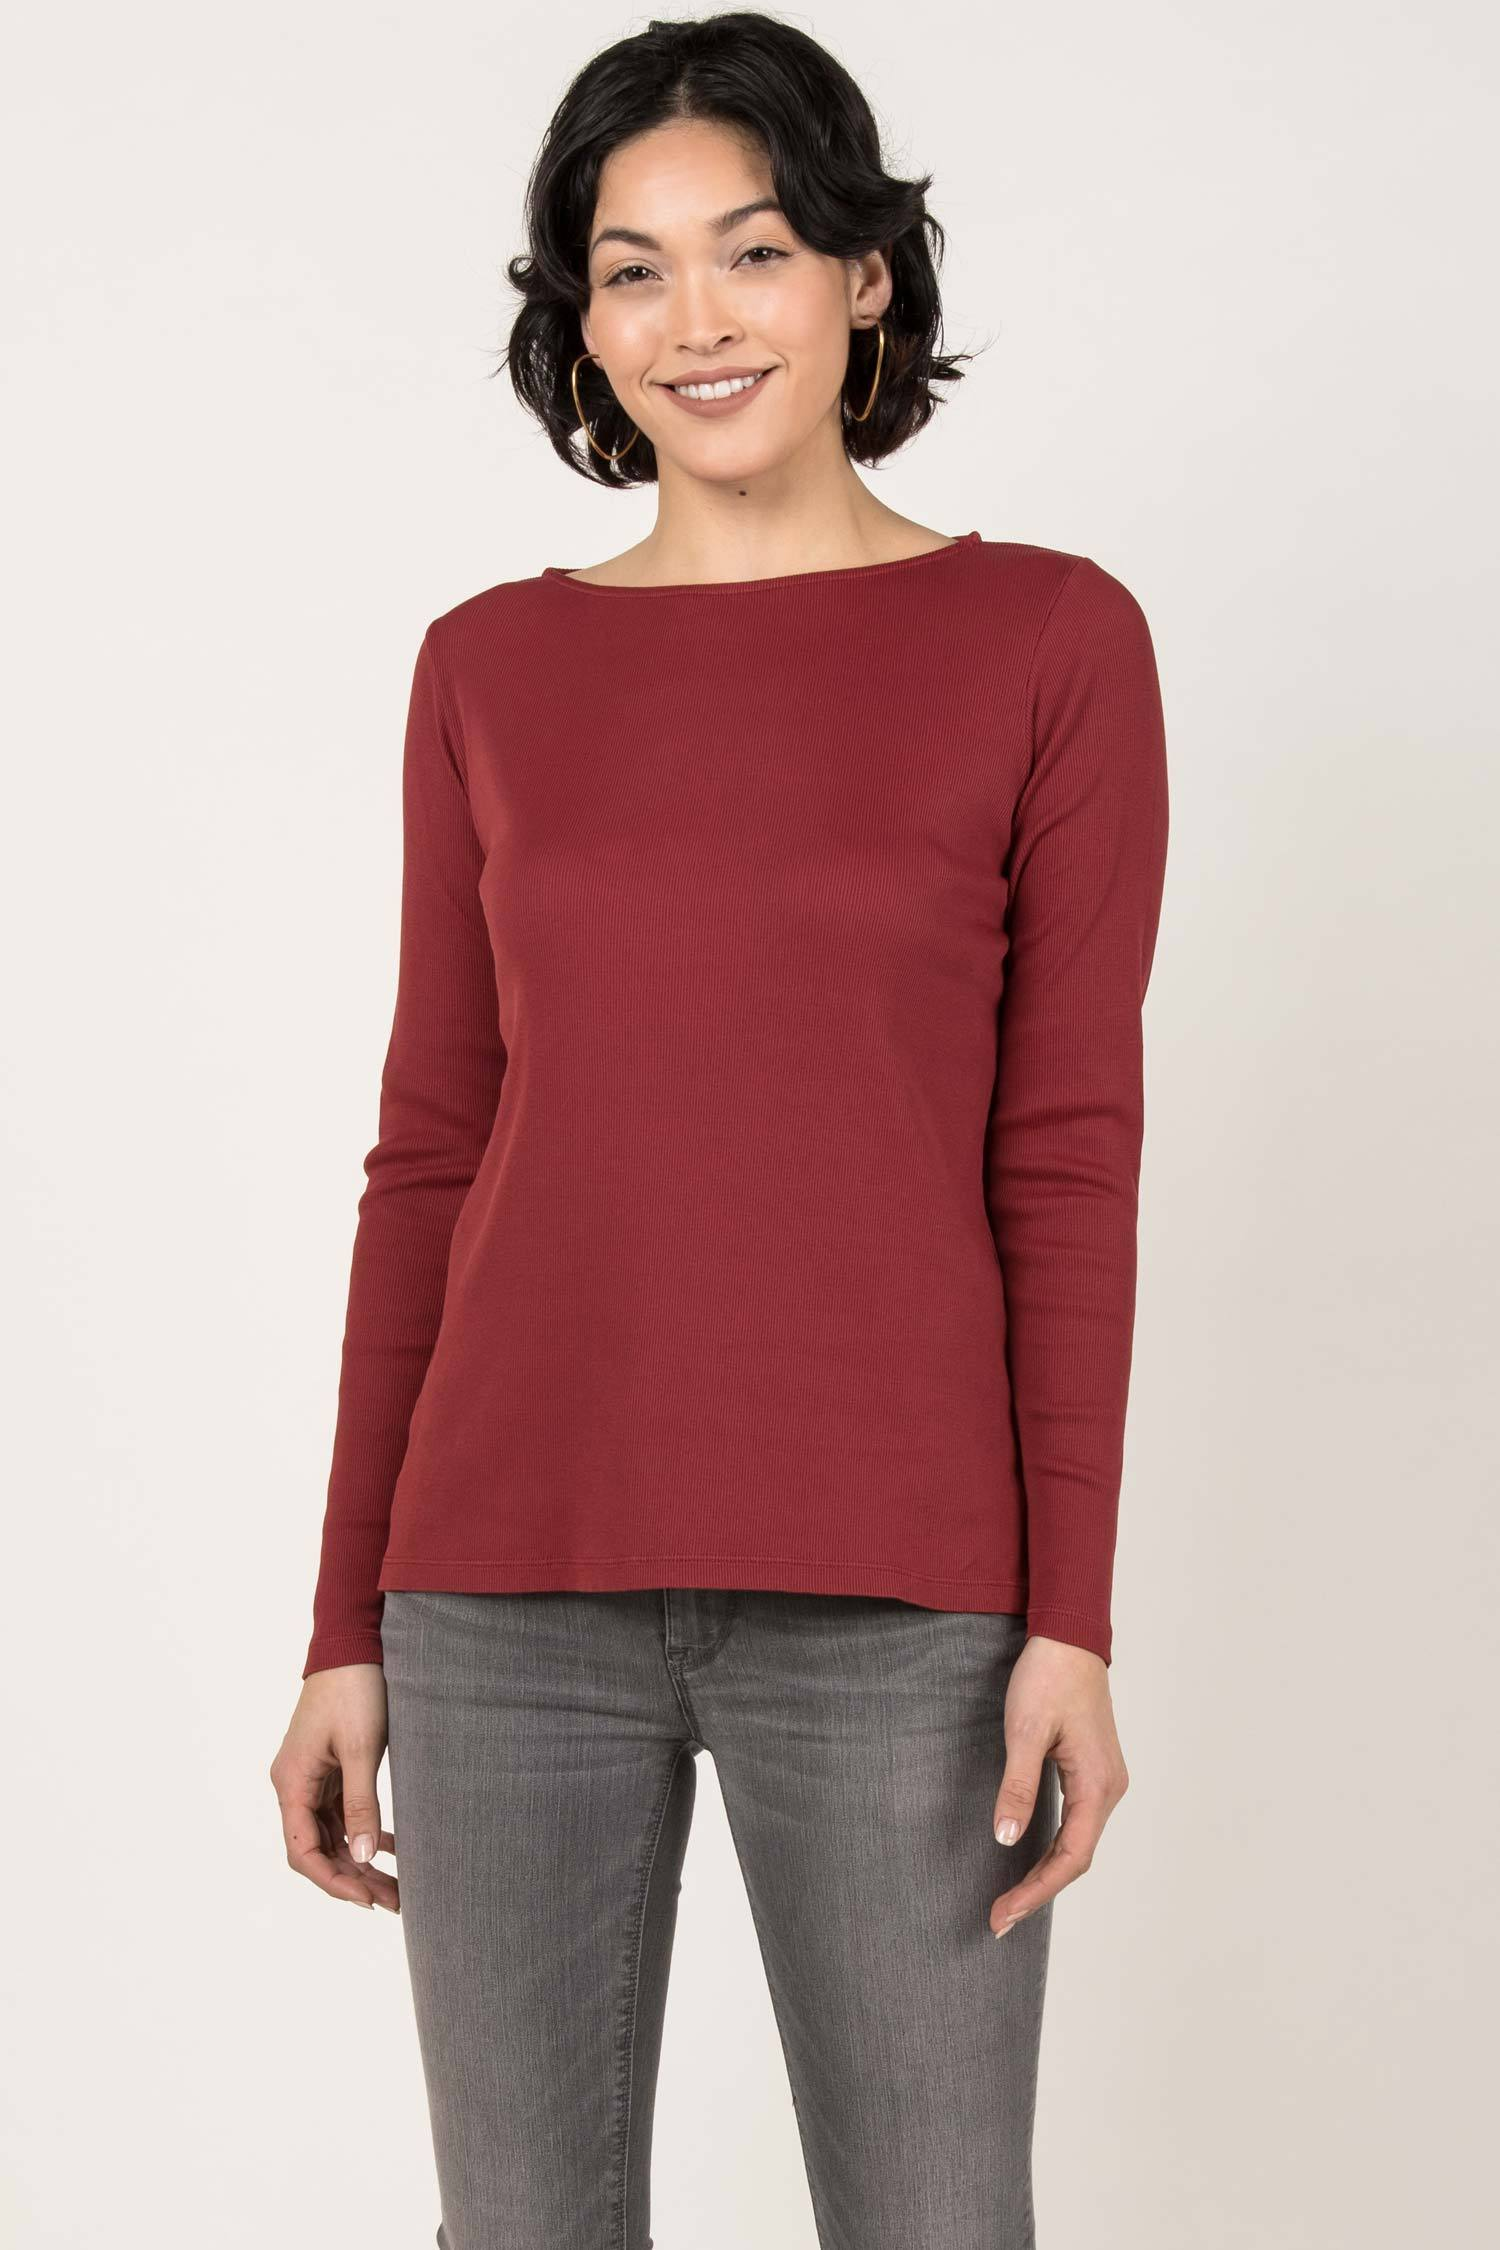 Womens Organic Cotton Top | White Long Sleeve Boatneck Tee | Cherry Red